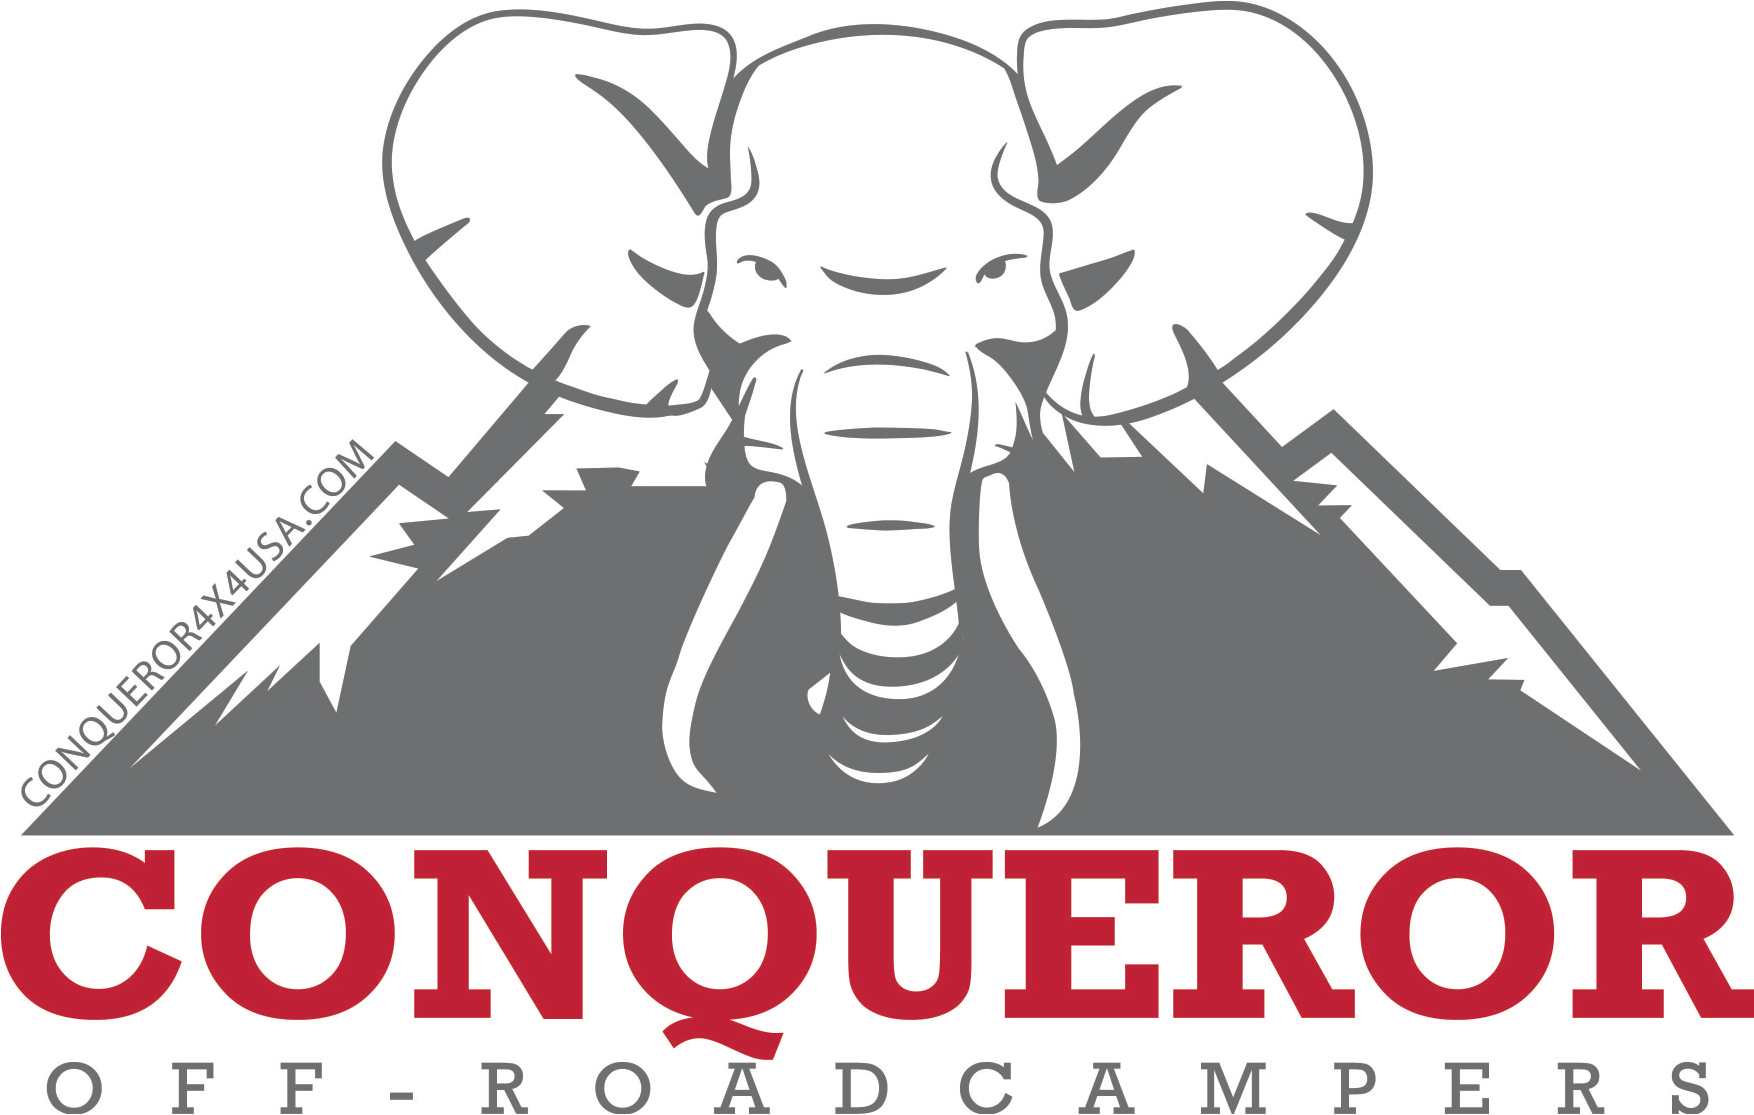 Conqueror Off-Road Campers